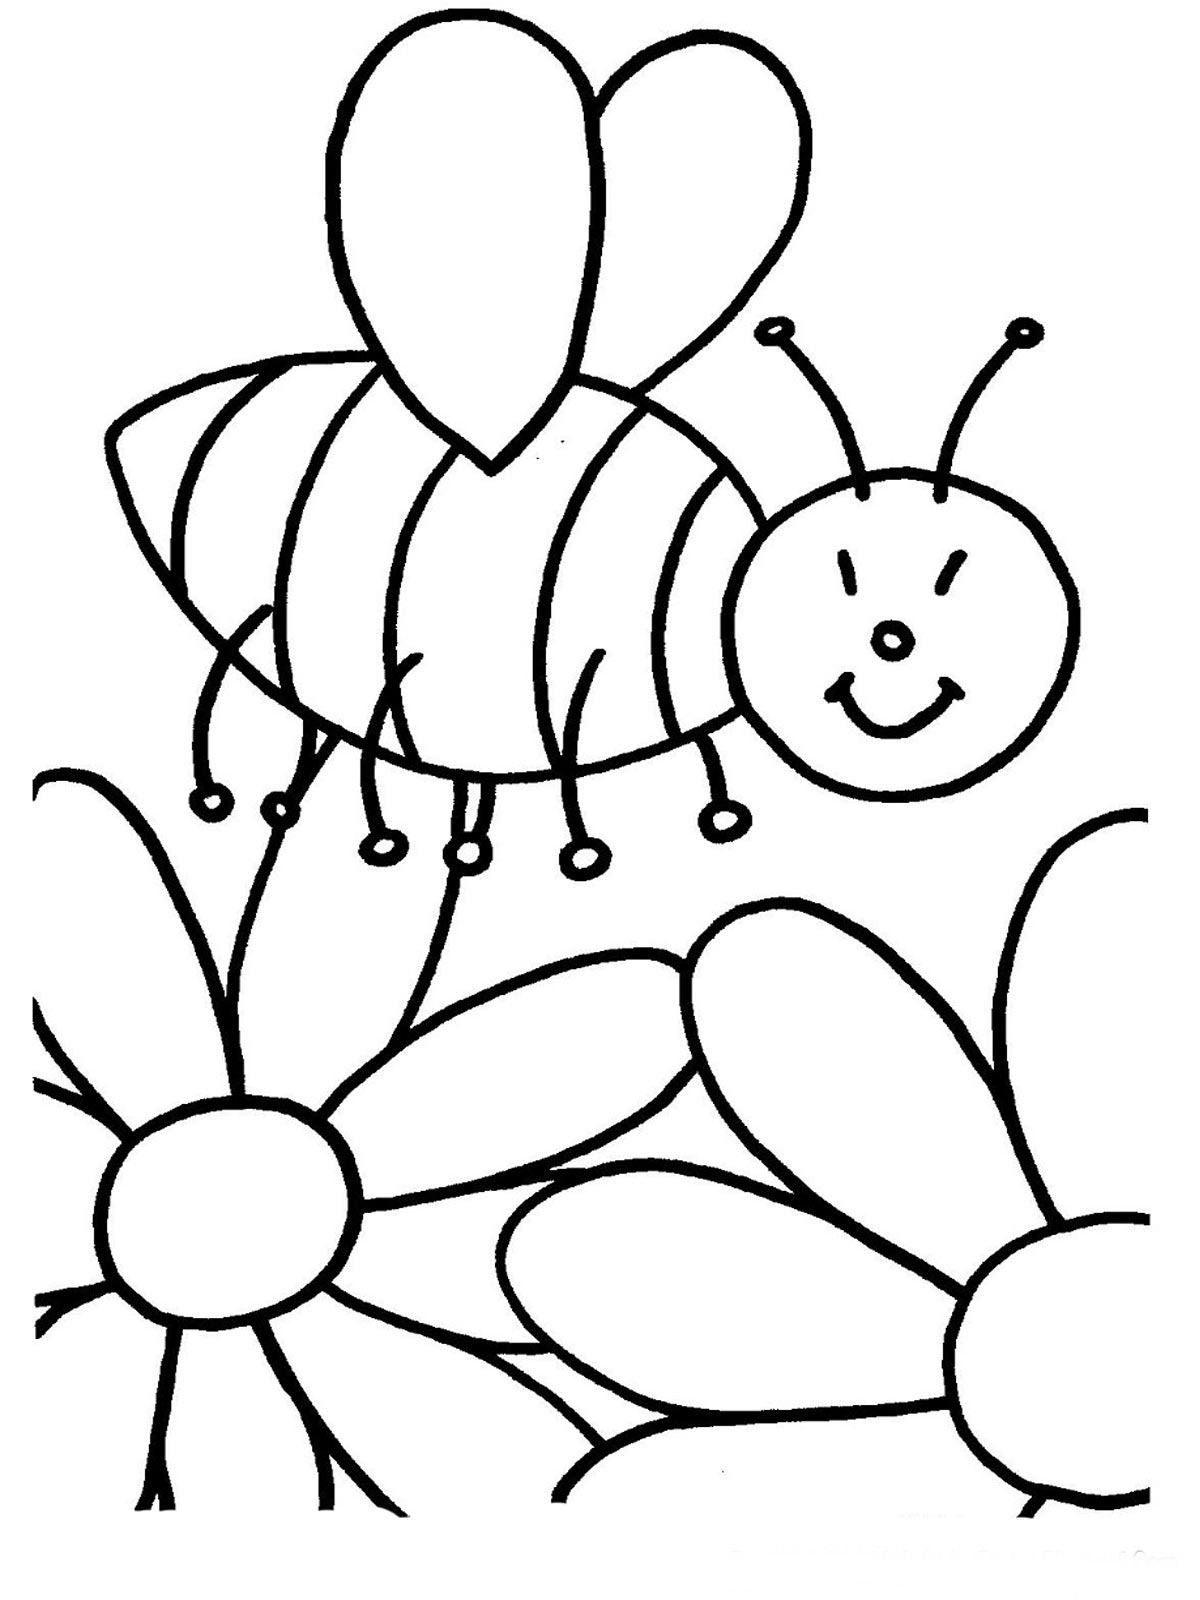 spring flowering bee free printable coloring pages spring flowering bee free printable coloring pages